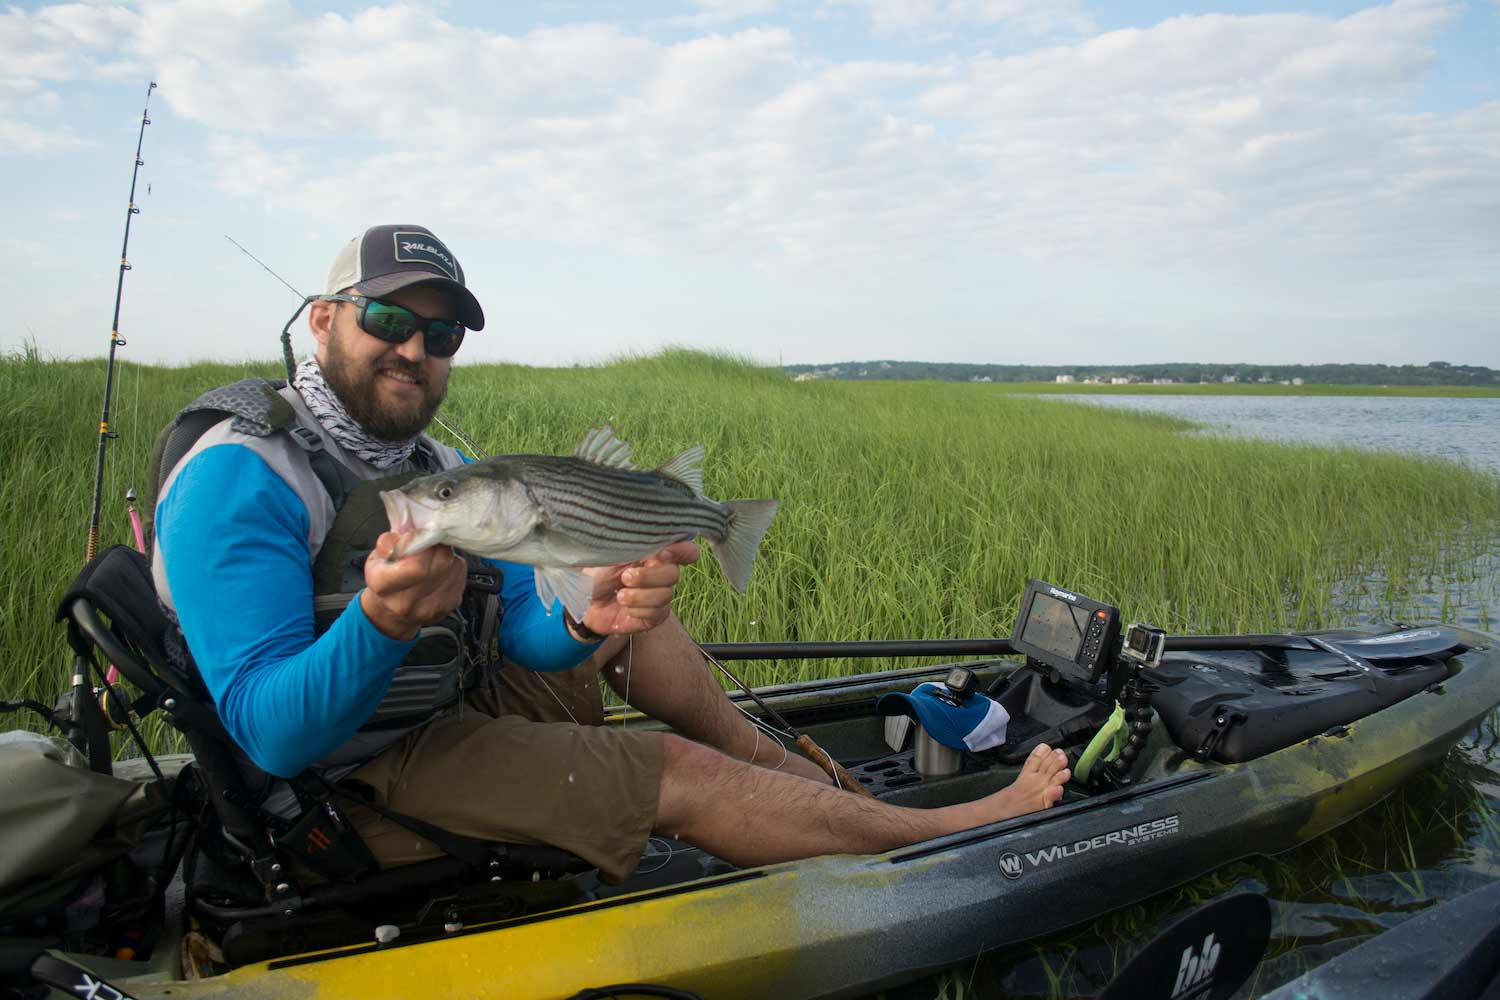 Build Out Your Saltwater Fishing Kayak Like the Ultimate Lightweight Skiff